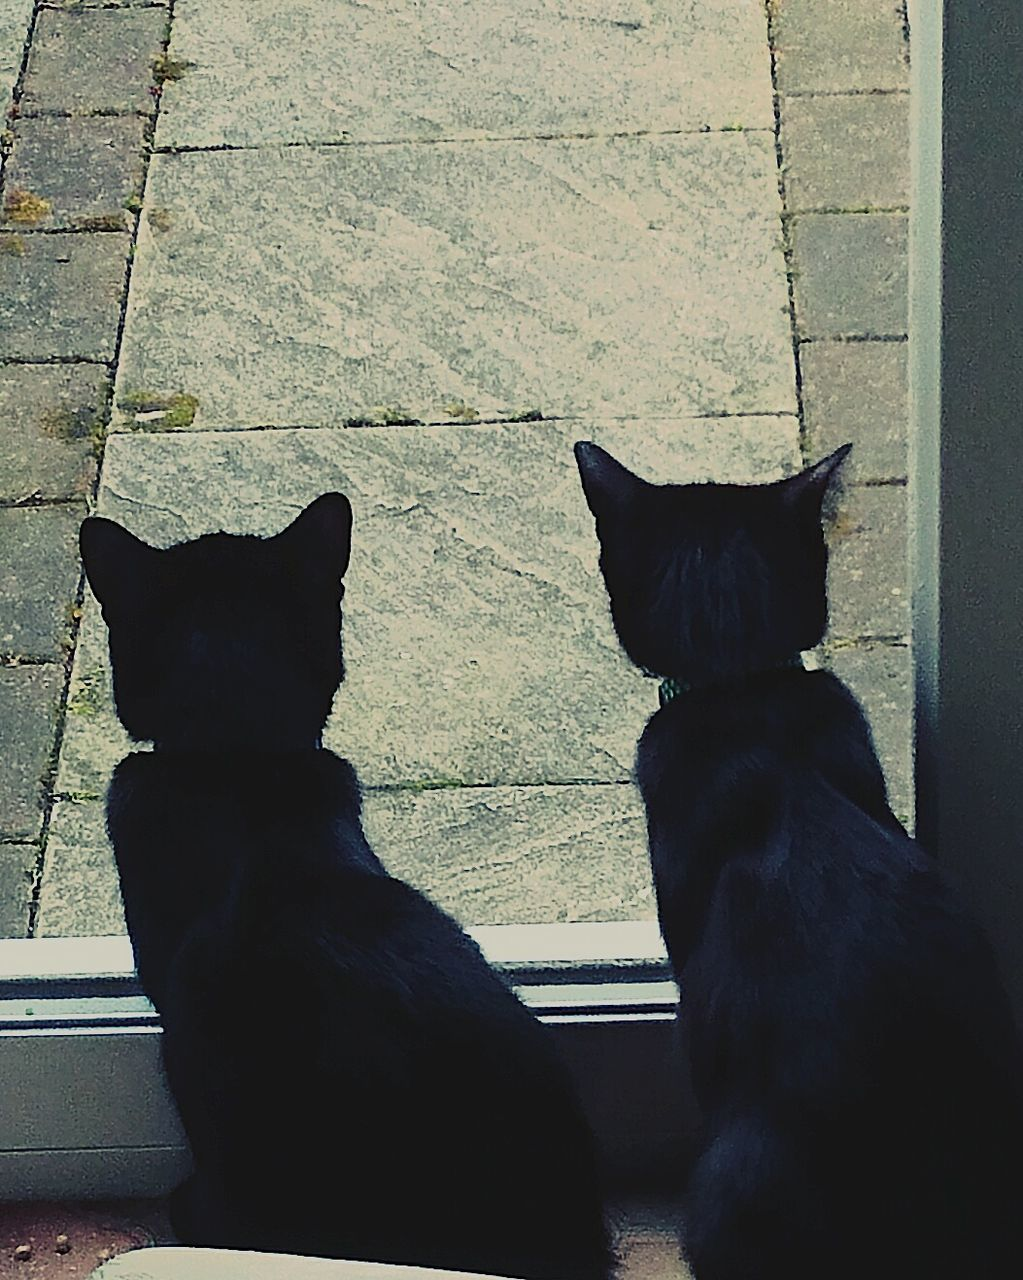 pets, domestic animals, animal themes, black color, sitting, mammal, no people, dog, day, domestic cat, togetherness, outdoors, close-up